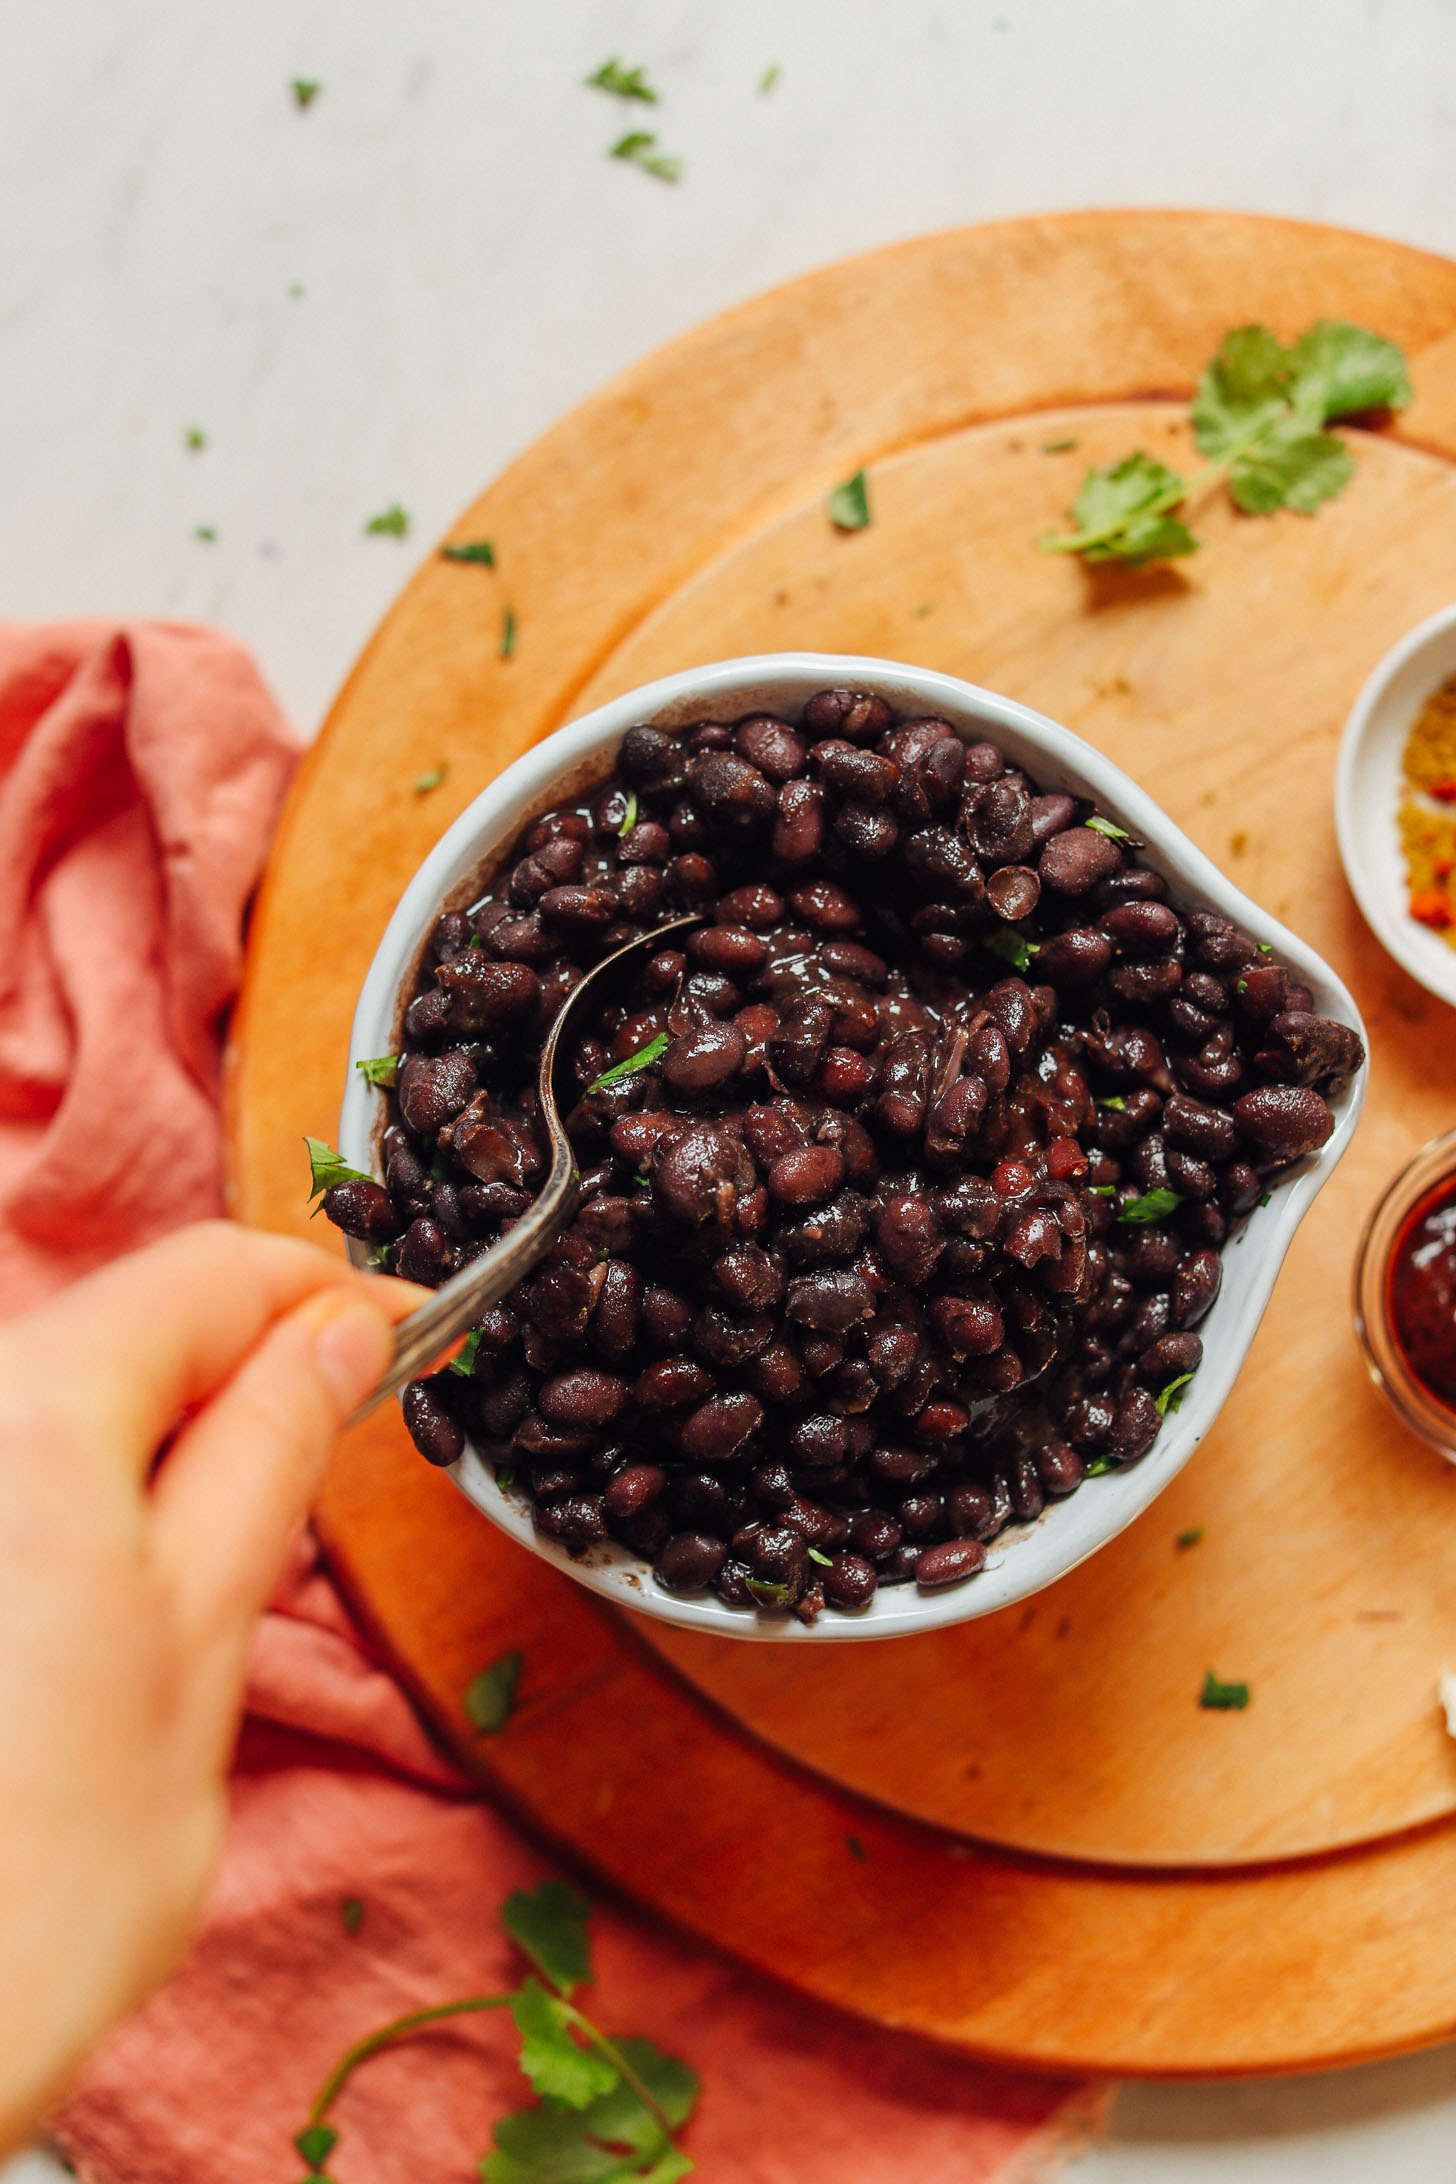 Grabbing a spoonful of homemade black beans that are perfectly tender and flavorful